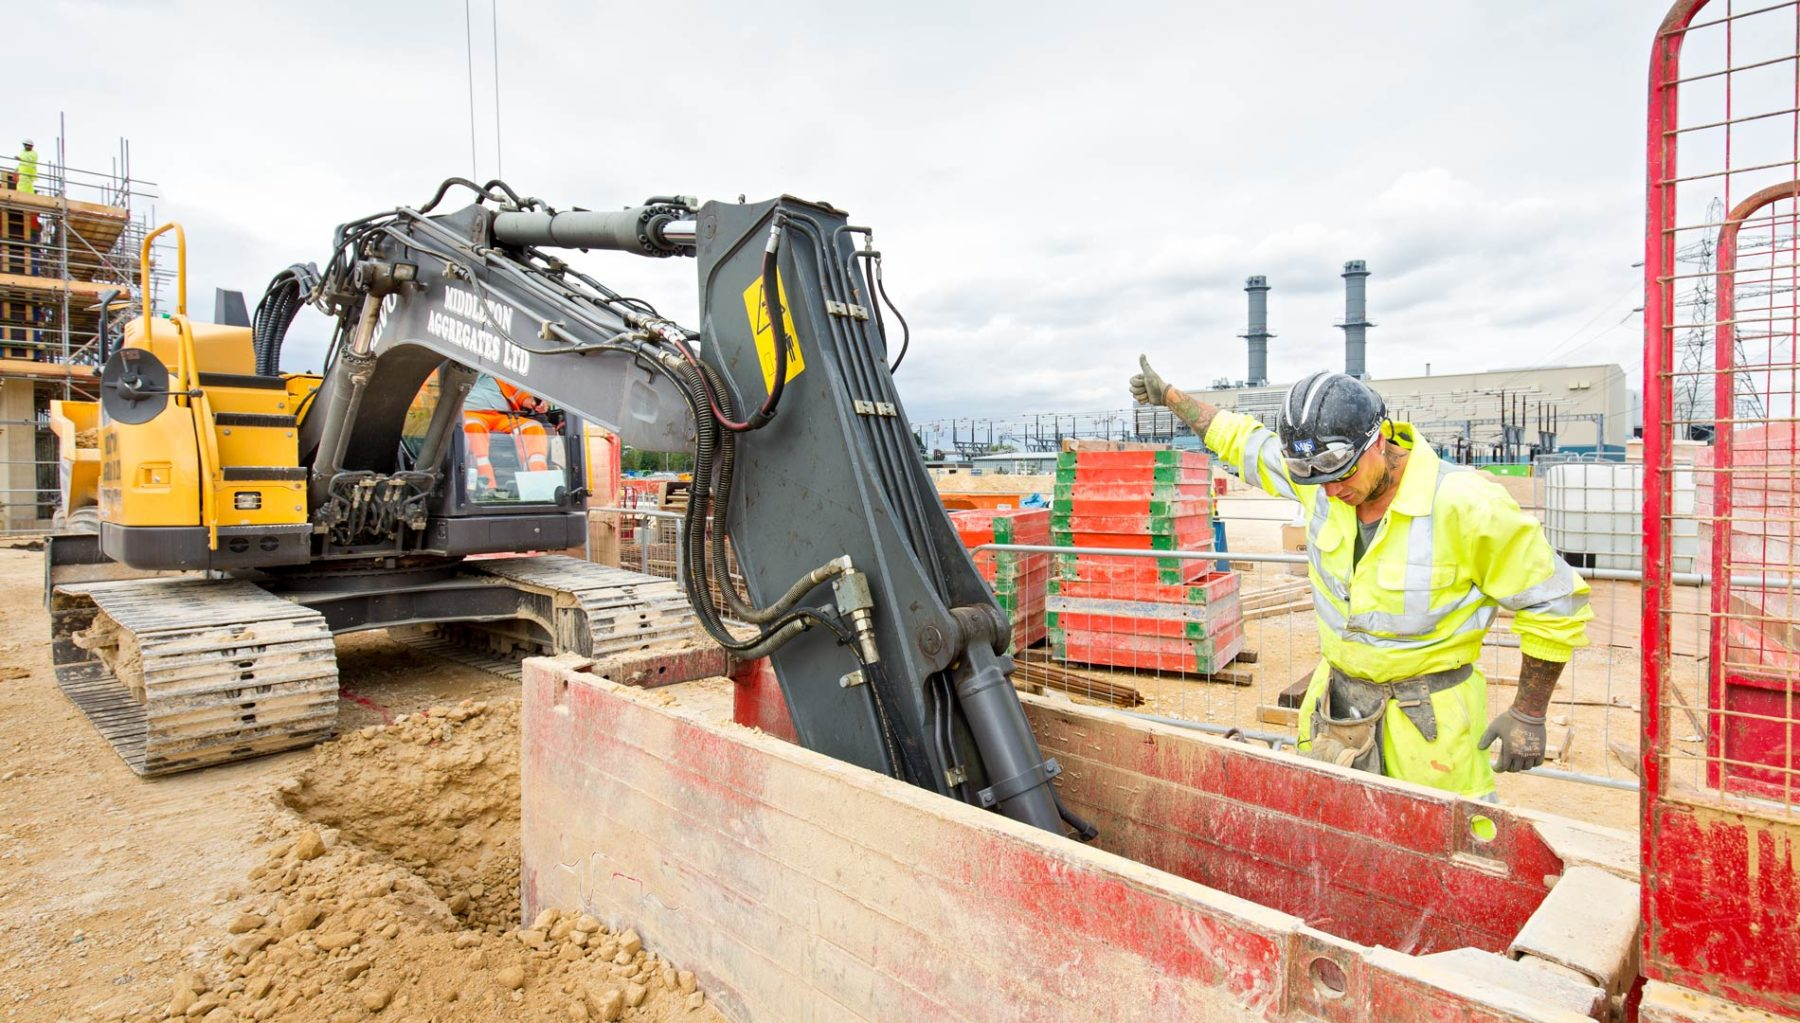 Thumbs up from construction worker to excavator working down metal shuttering